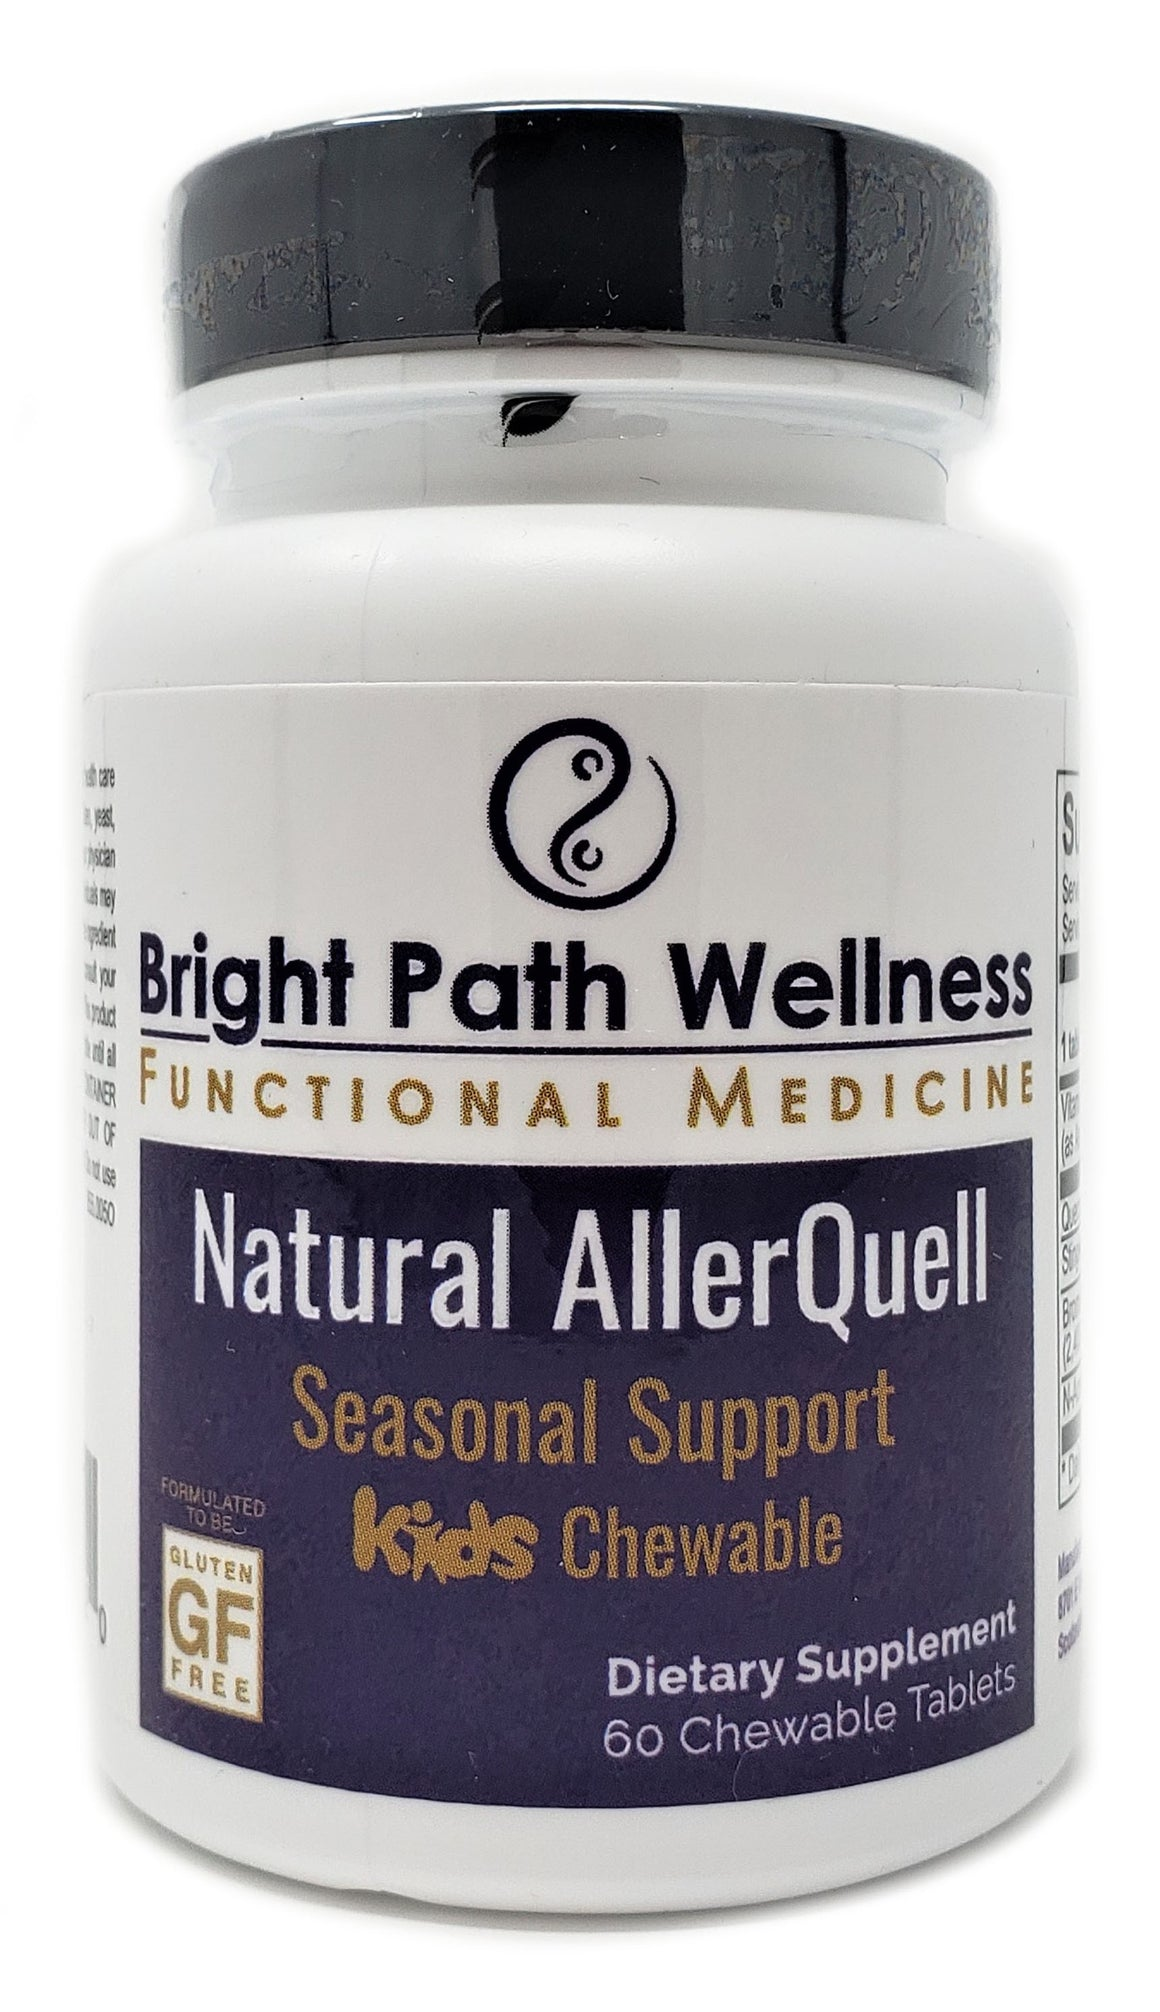 Natural AllerQuell Chewables for Kids